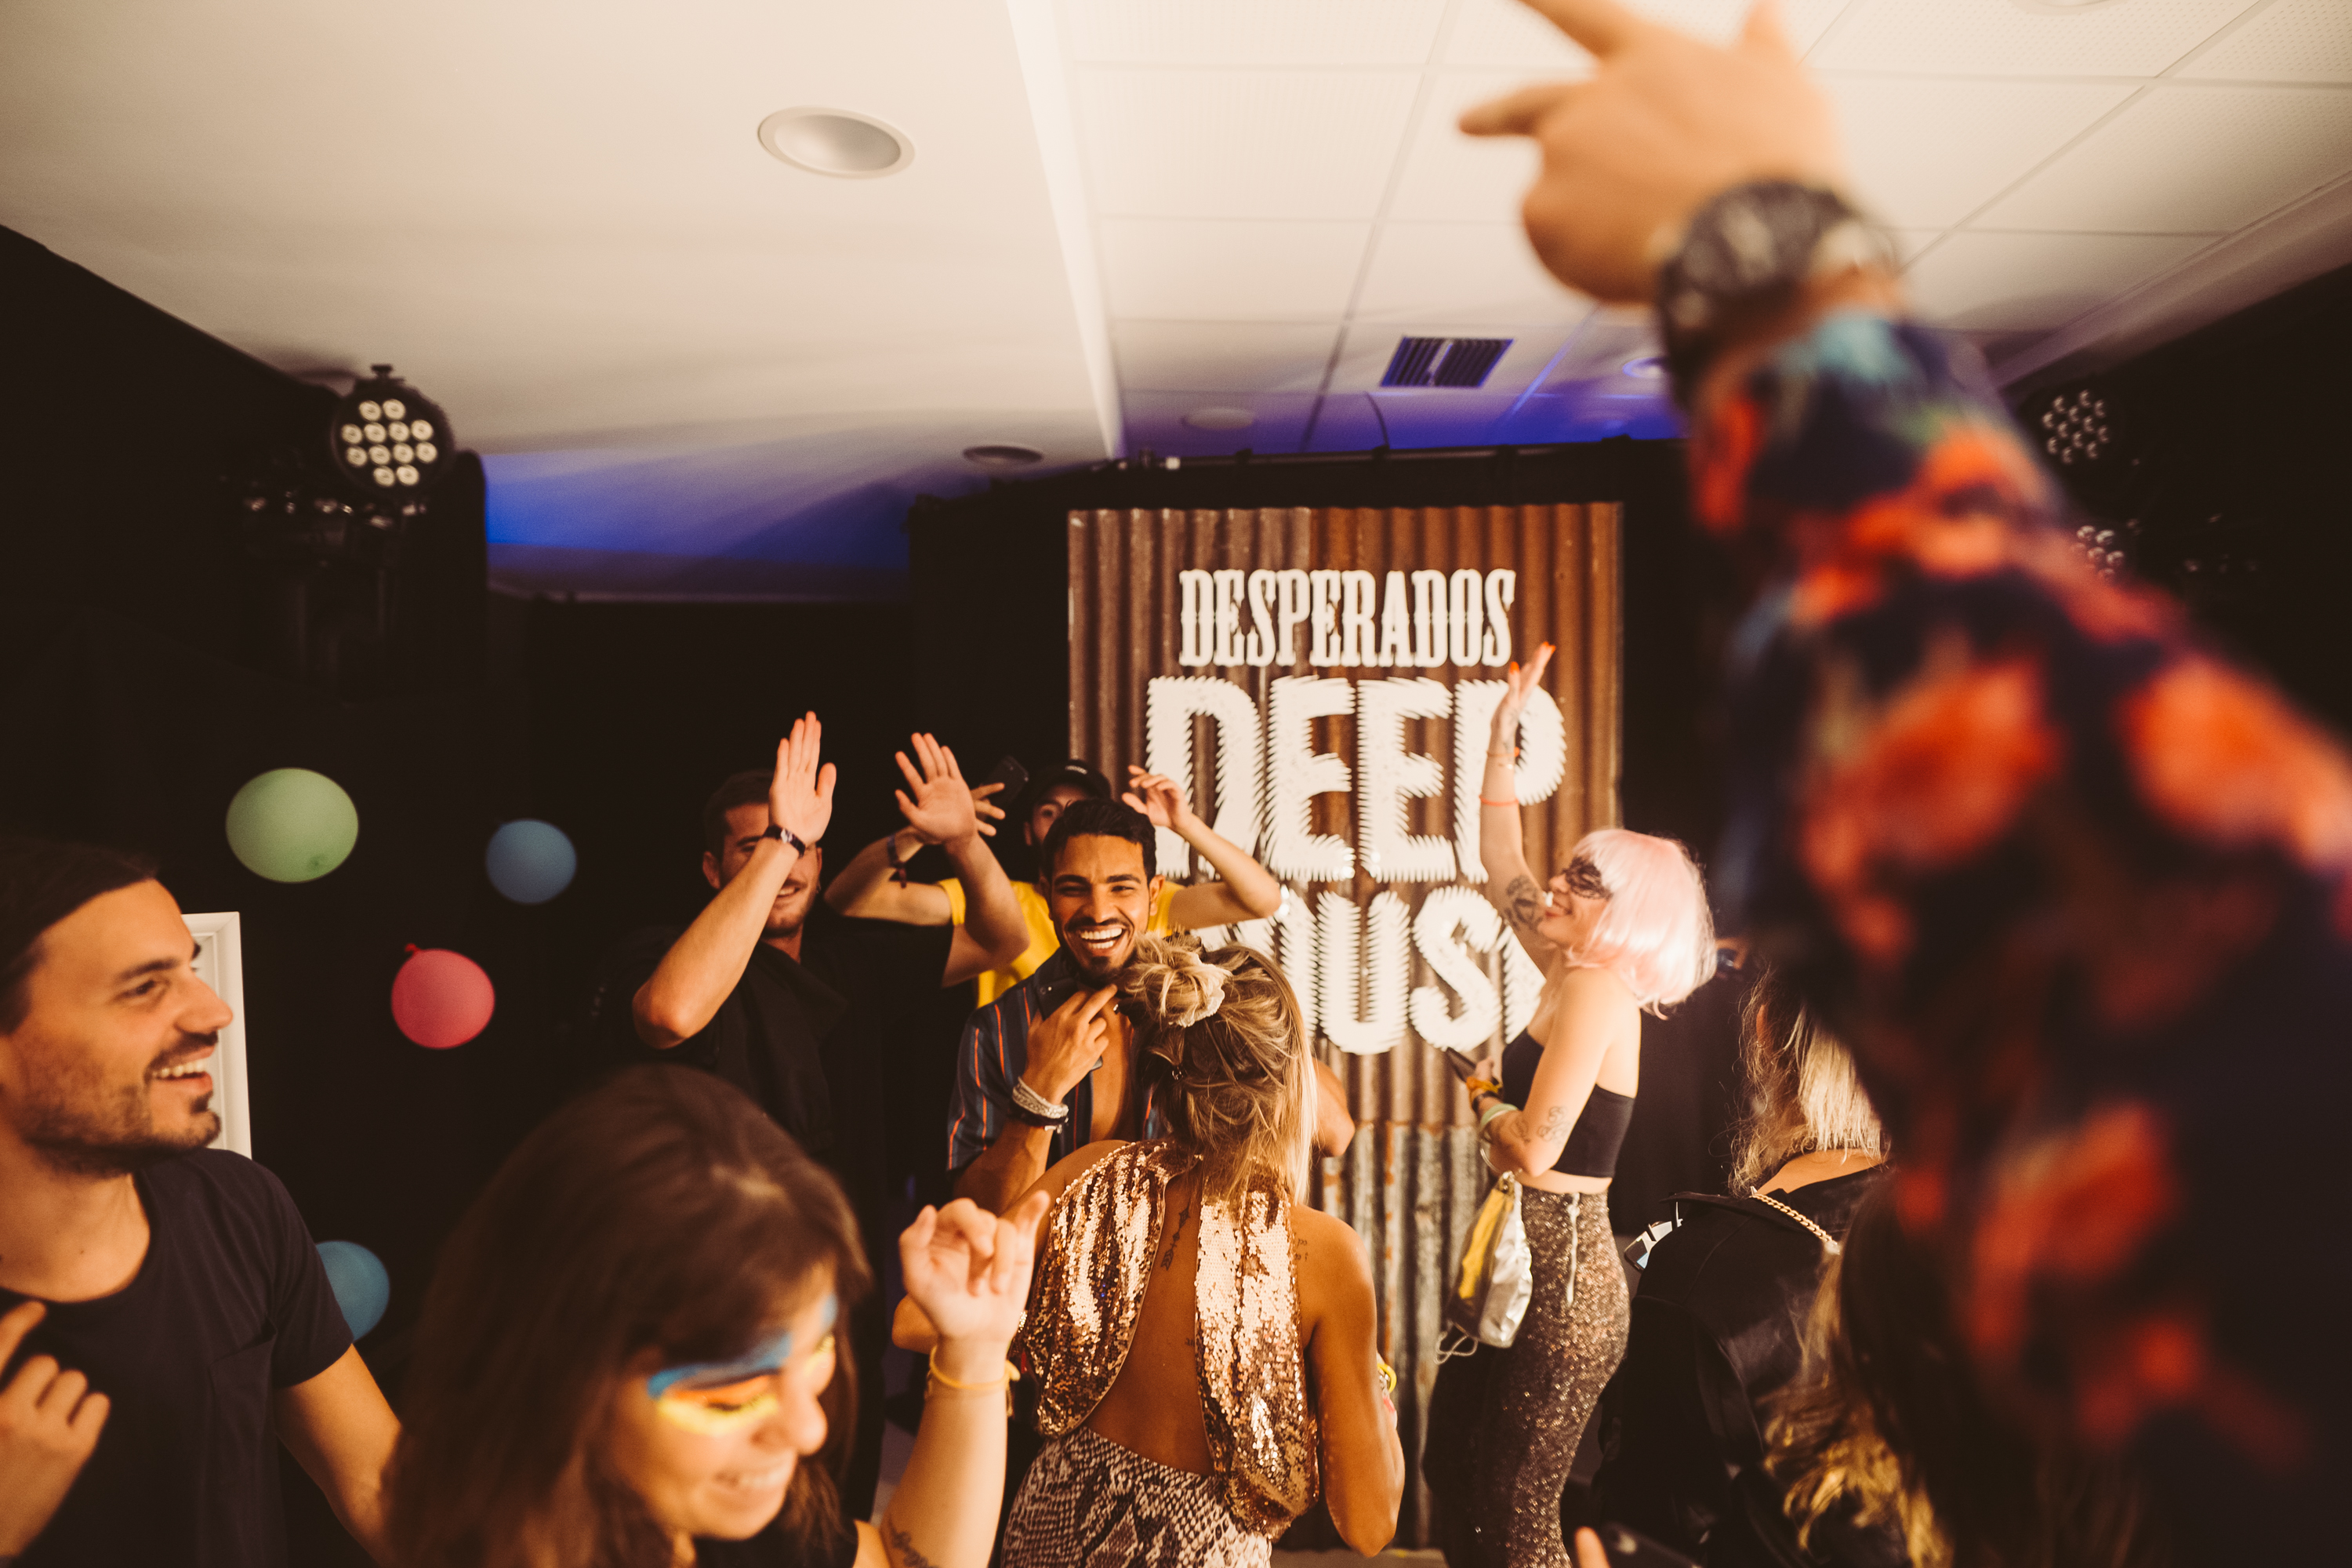 Desperados DeepHouse